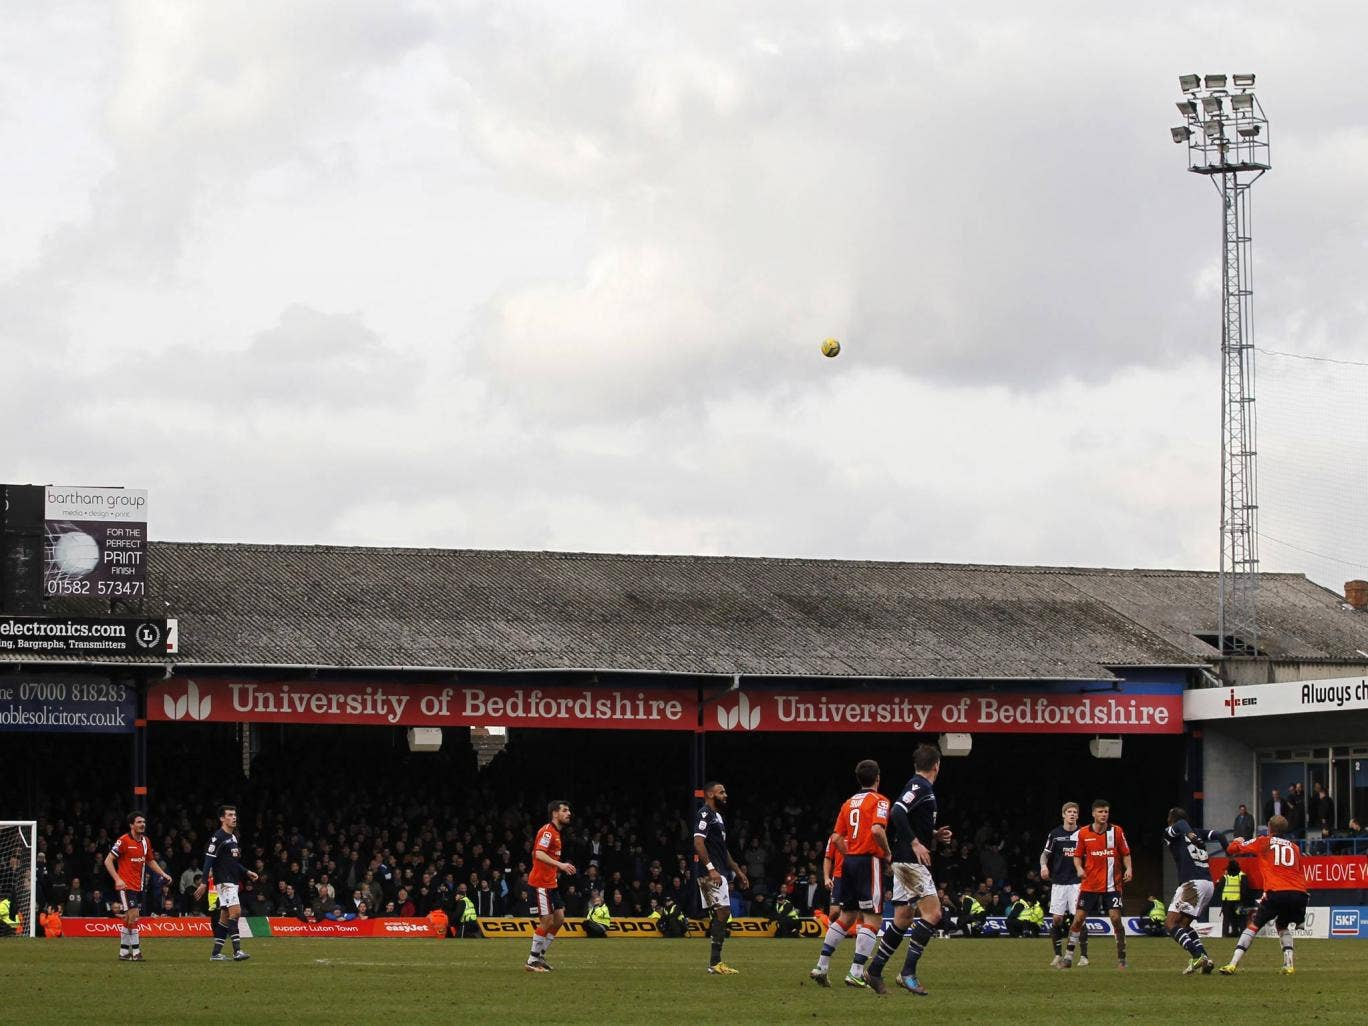 Luton Town have suffered three play-off defeats since relegation